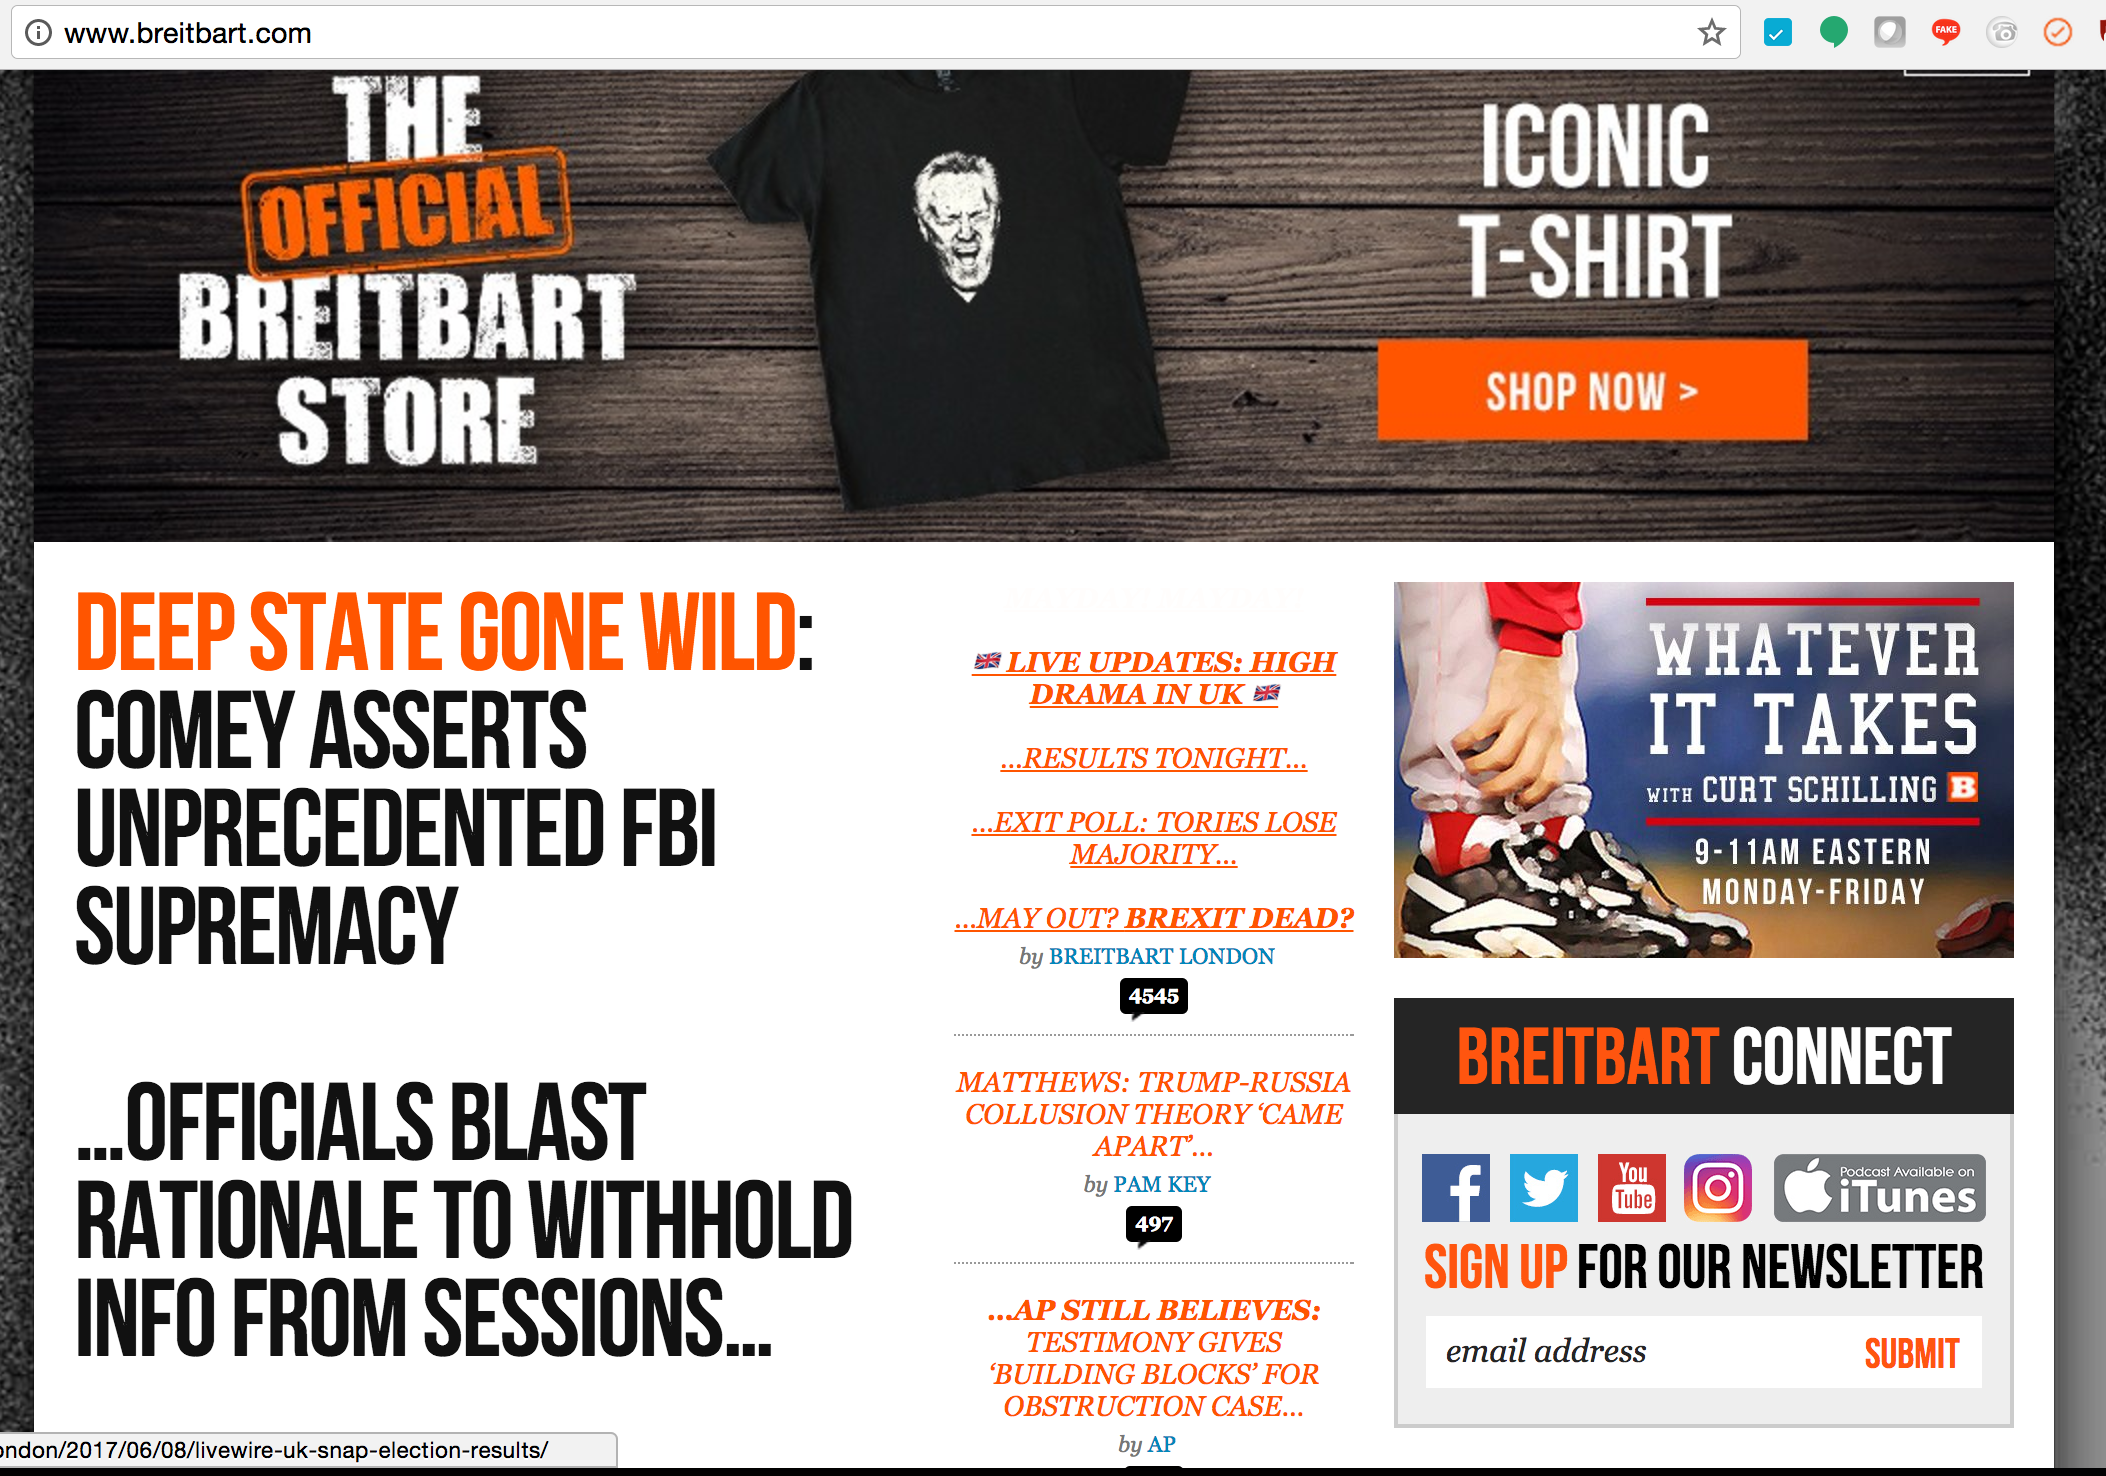 Home Page Breitbart - 6:35pm Thursday, June 8